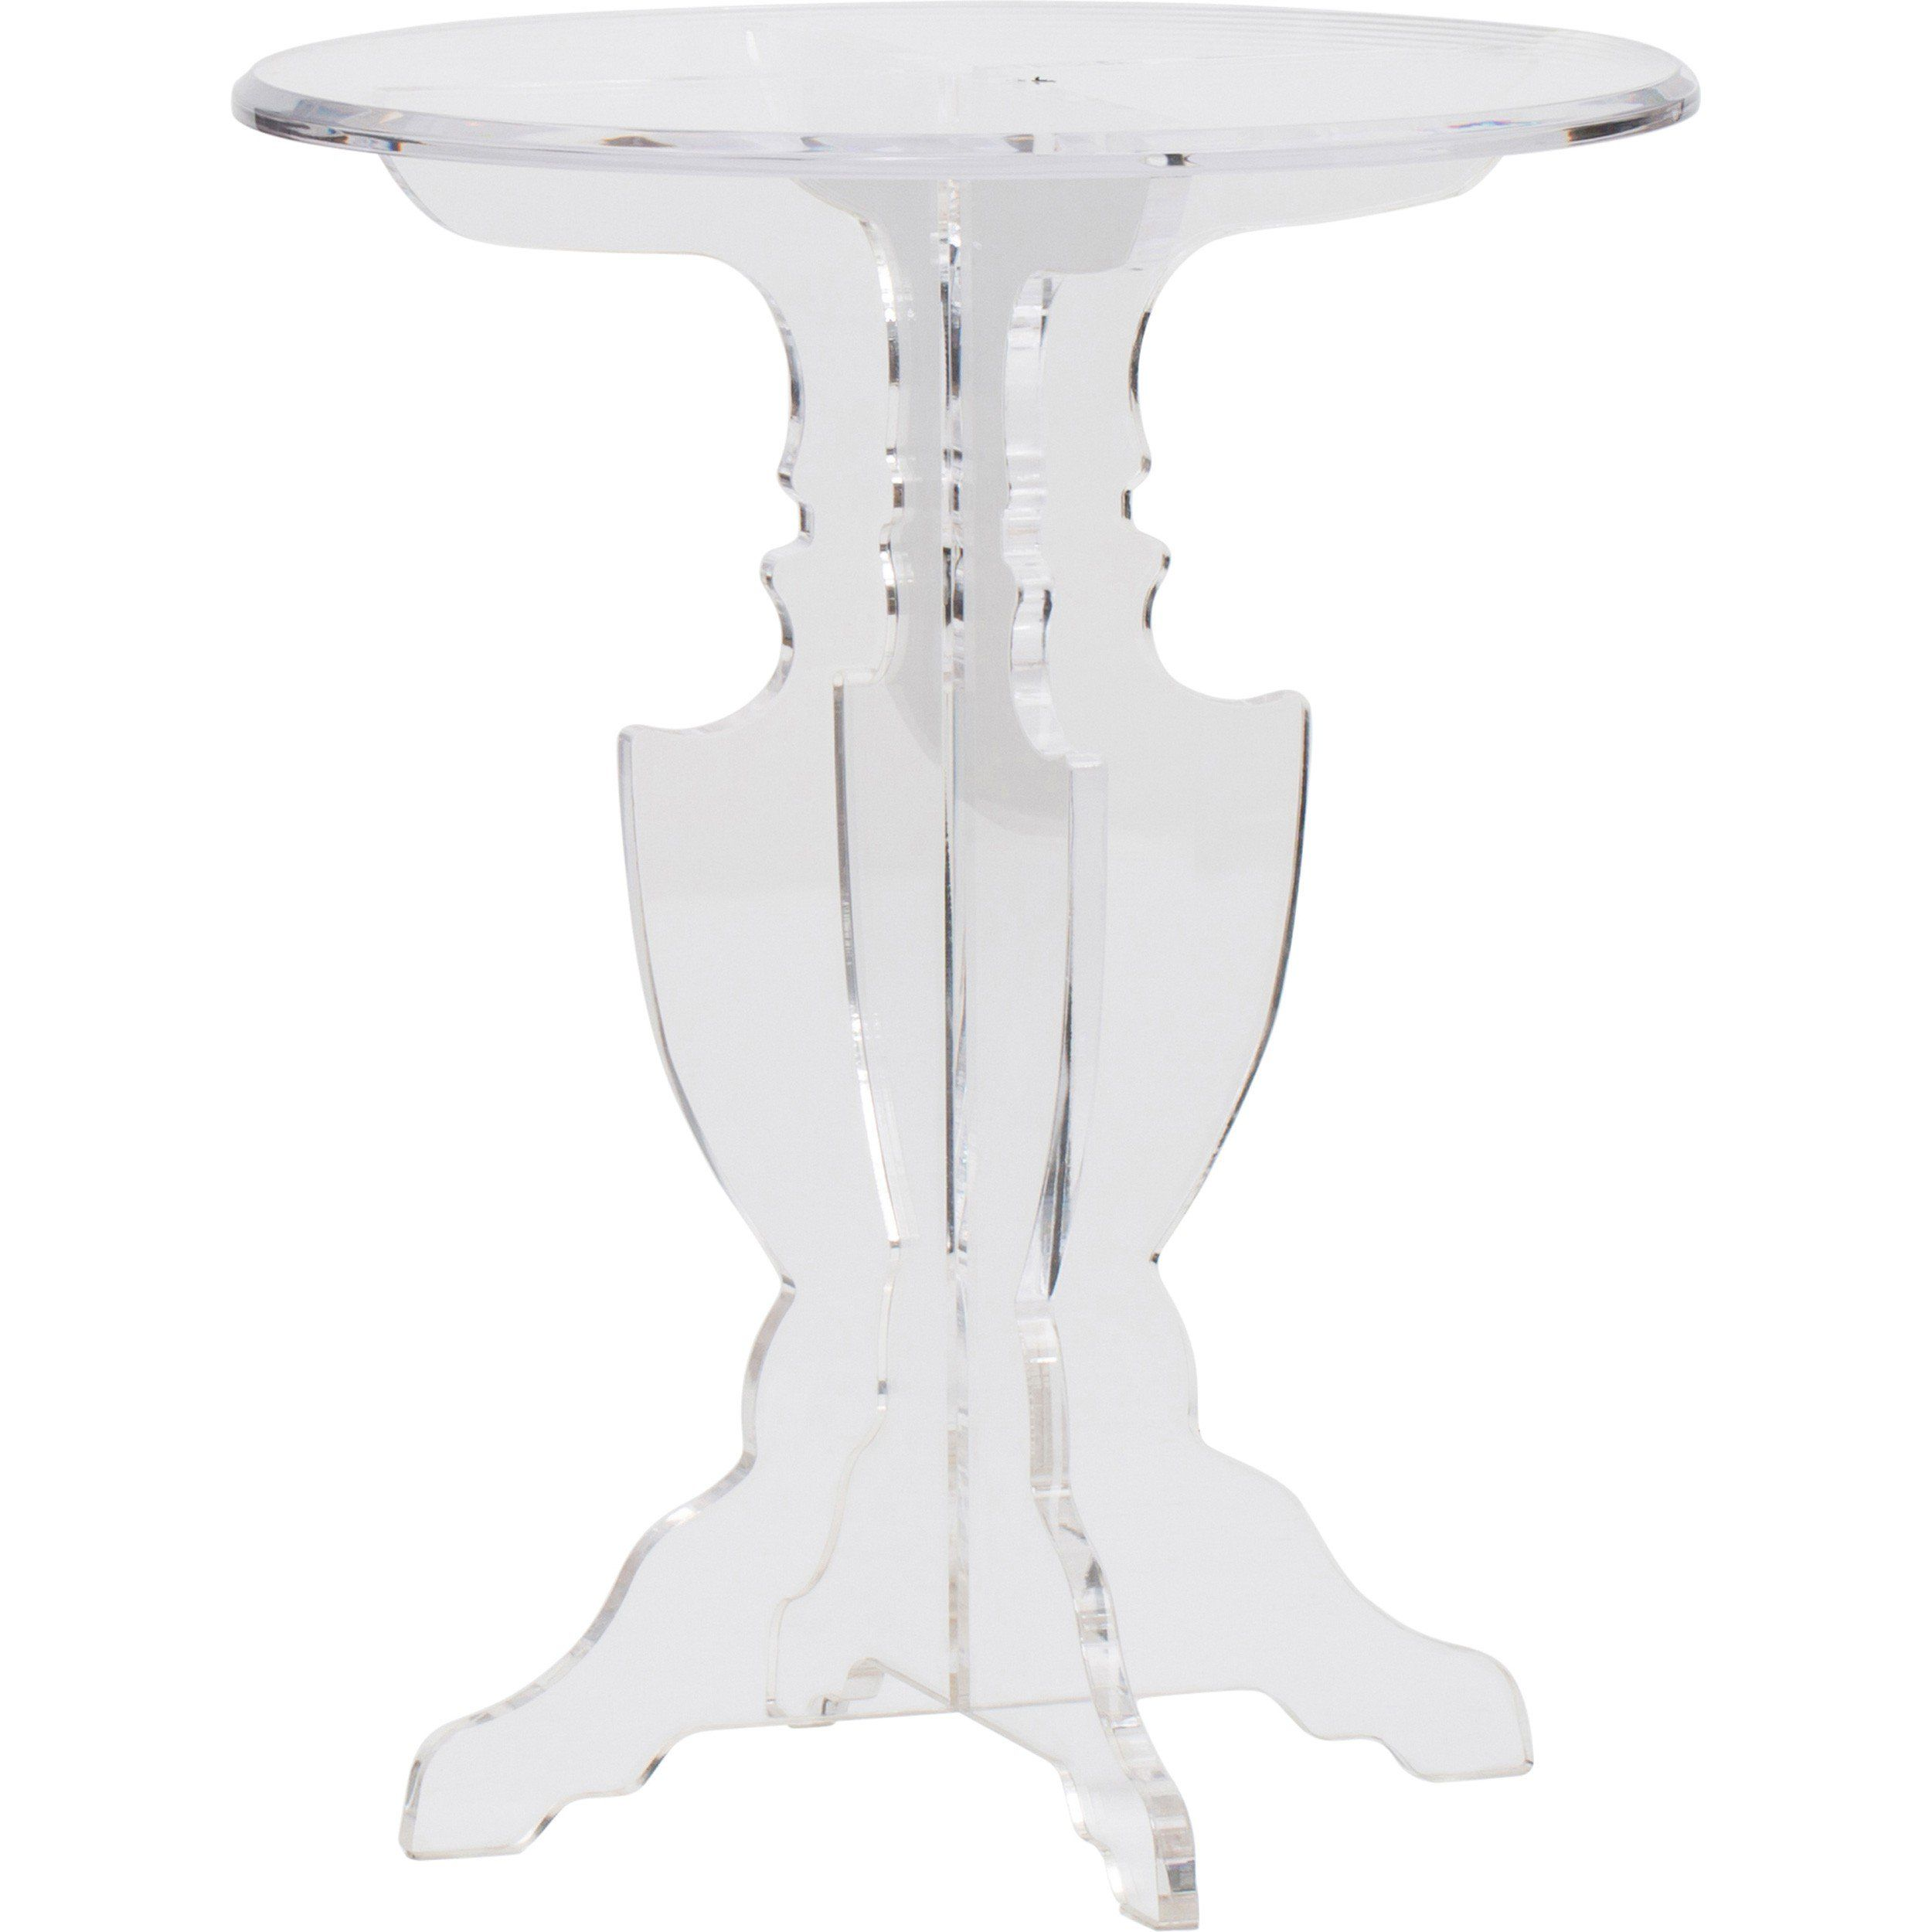 prestige acrylic accent table end tables black furniture red oriental lamps bar height set outdoor rocking chair covers stained glass buffet wisteria sliding door ideas concrete